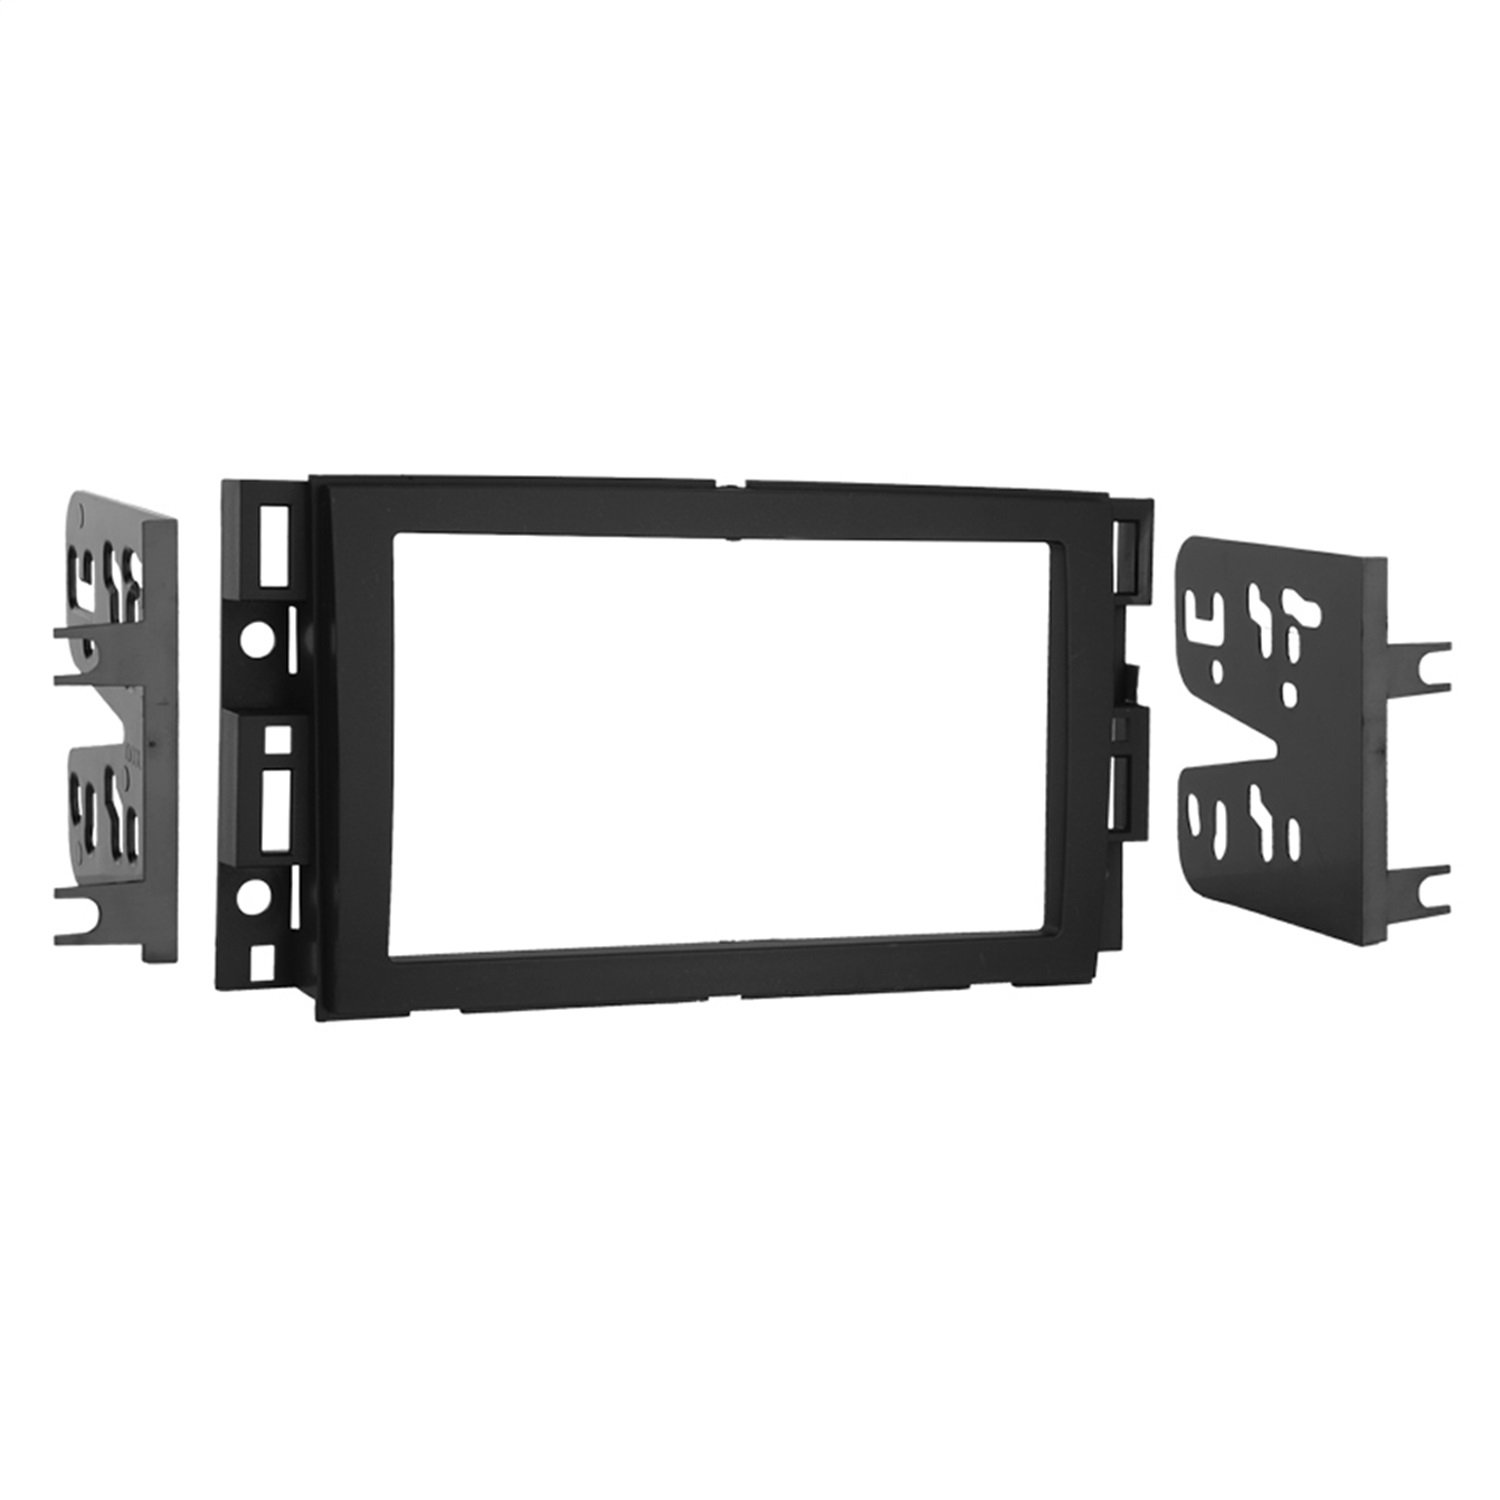 Metra 95-3305 Double DIN Installation Multi Kit for 2006-up Select GM Vehicles